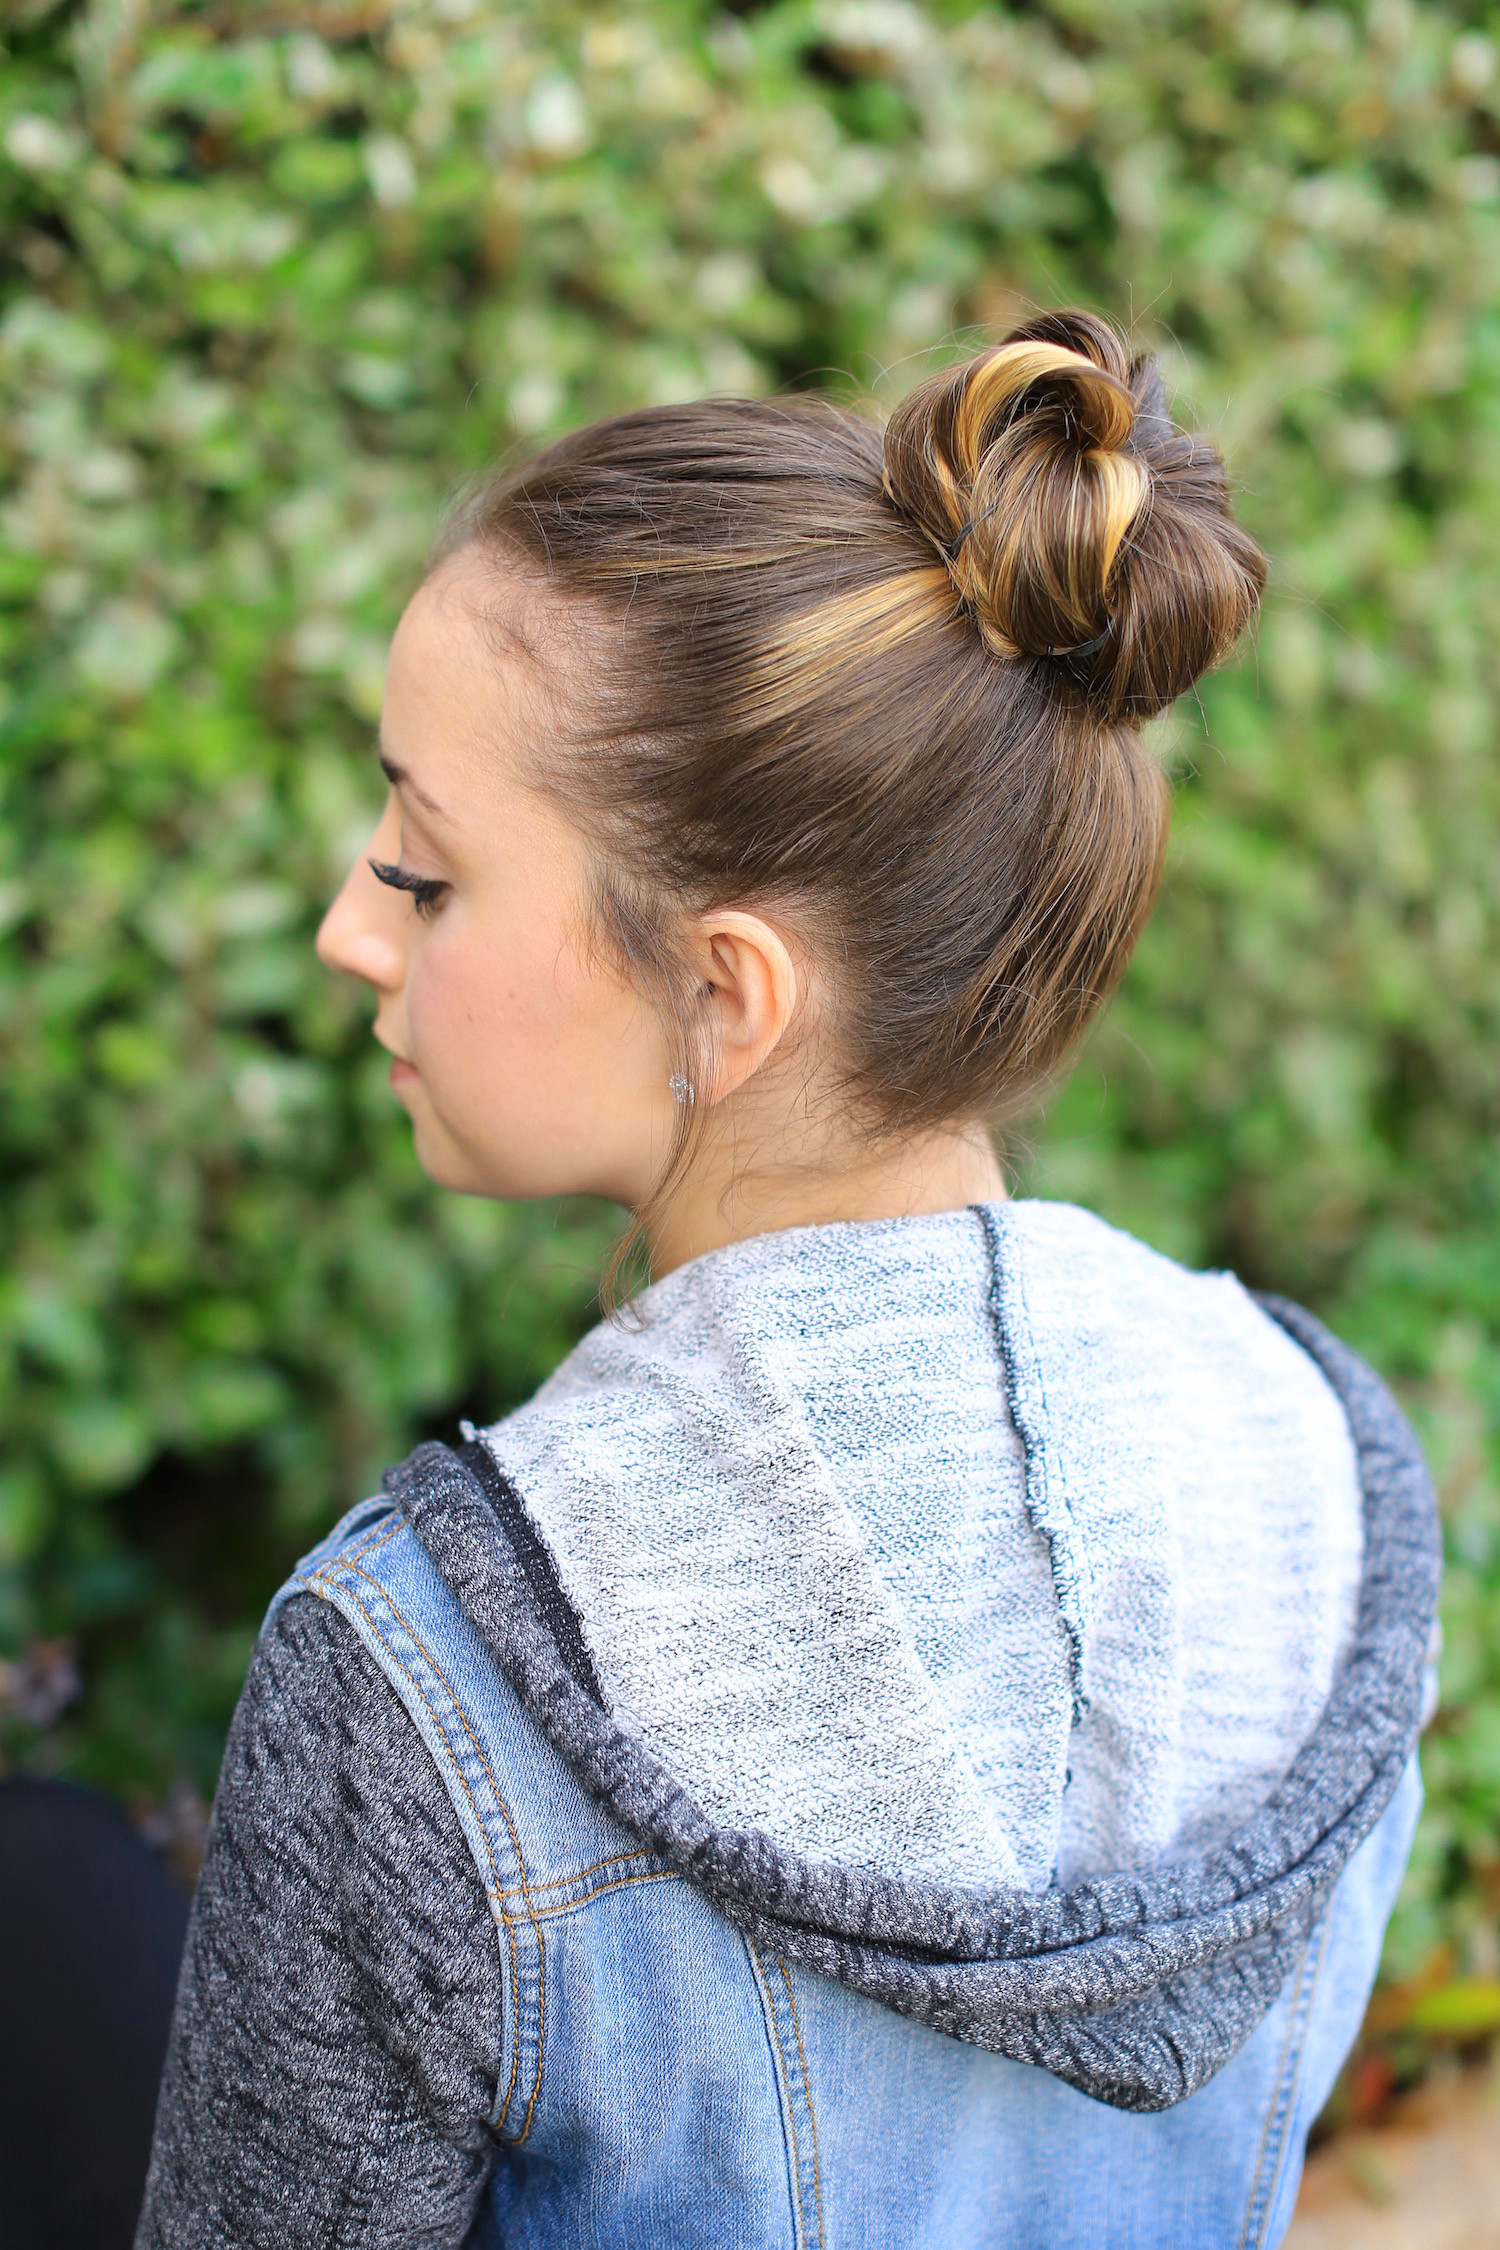 Best ideas about Bun Hairstyles For Girls . Save or Pin How to Create a Crown Bun Now.